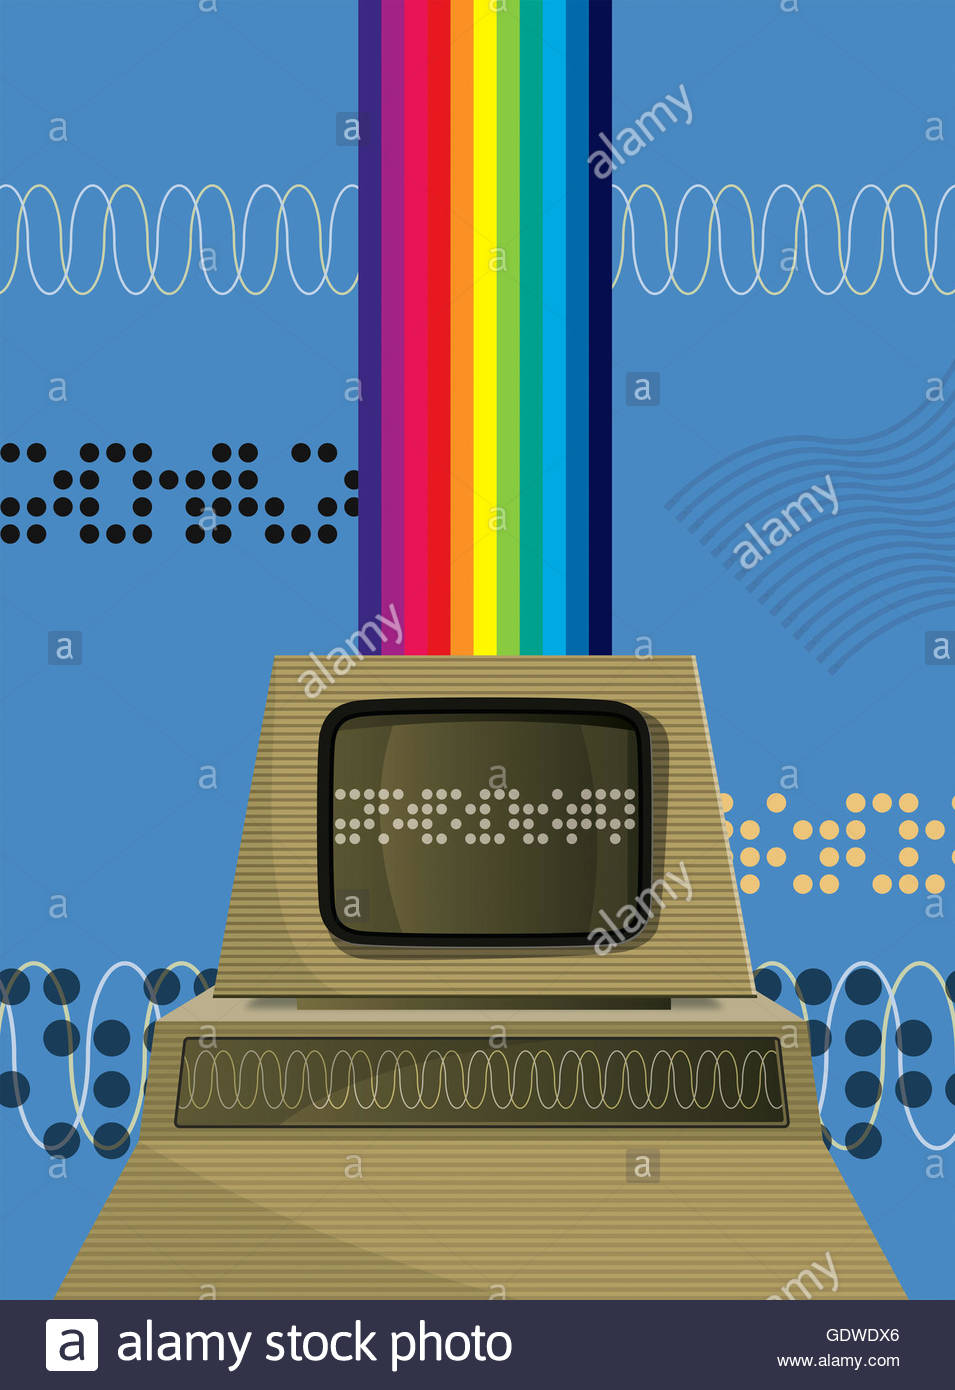 Retro personal computer with rainbow - Stock Image